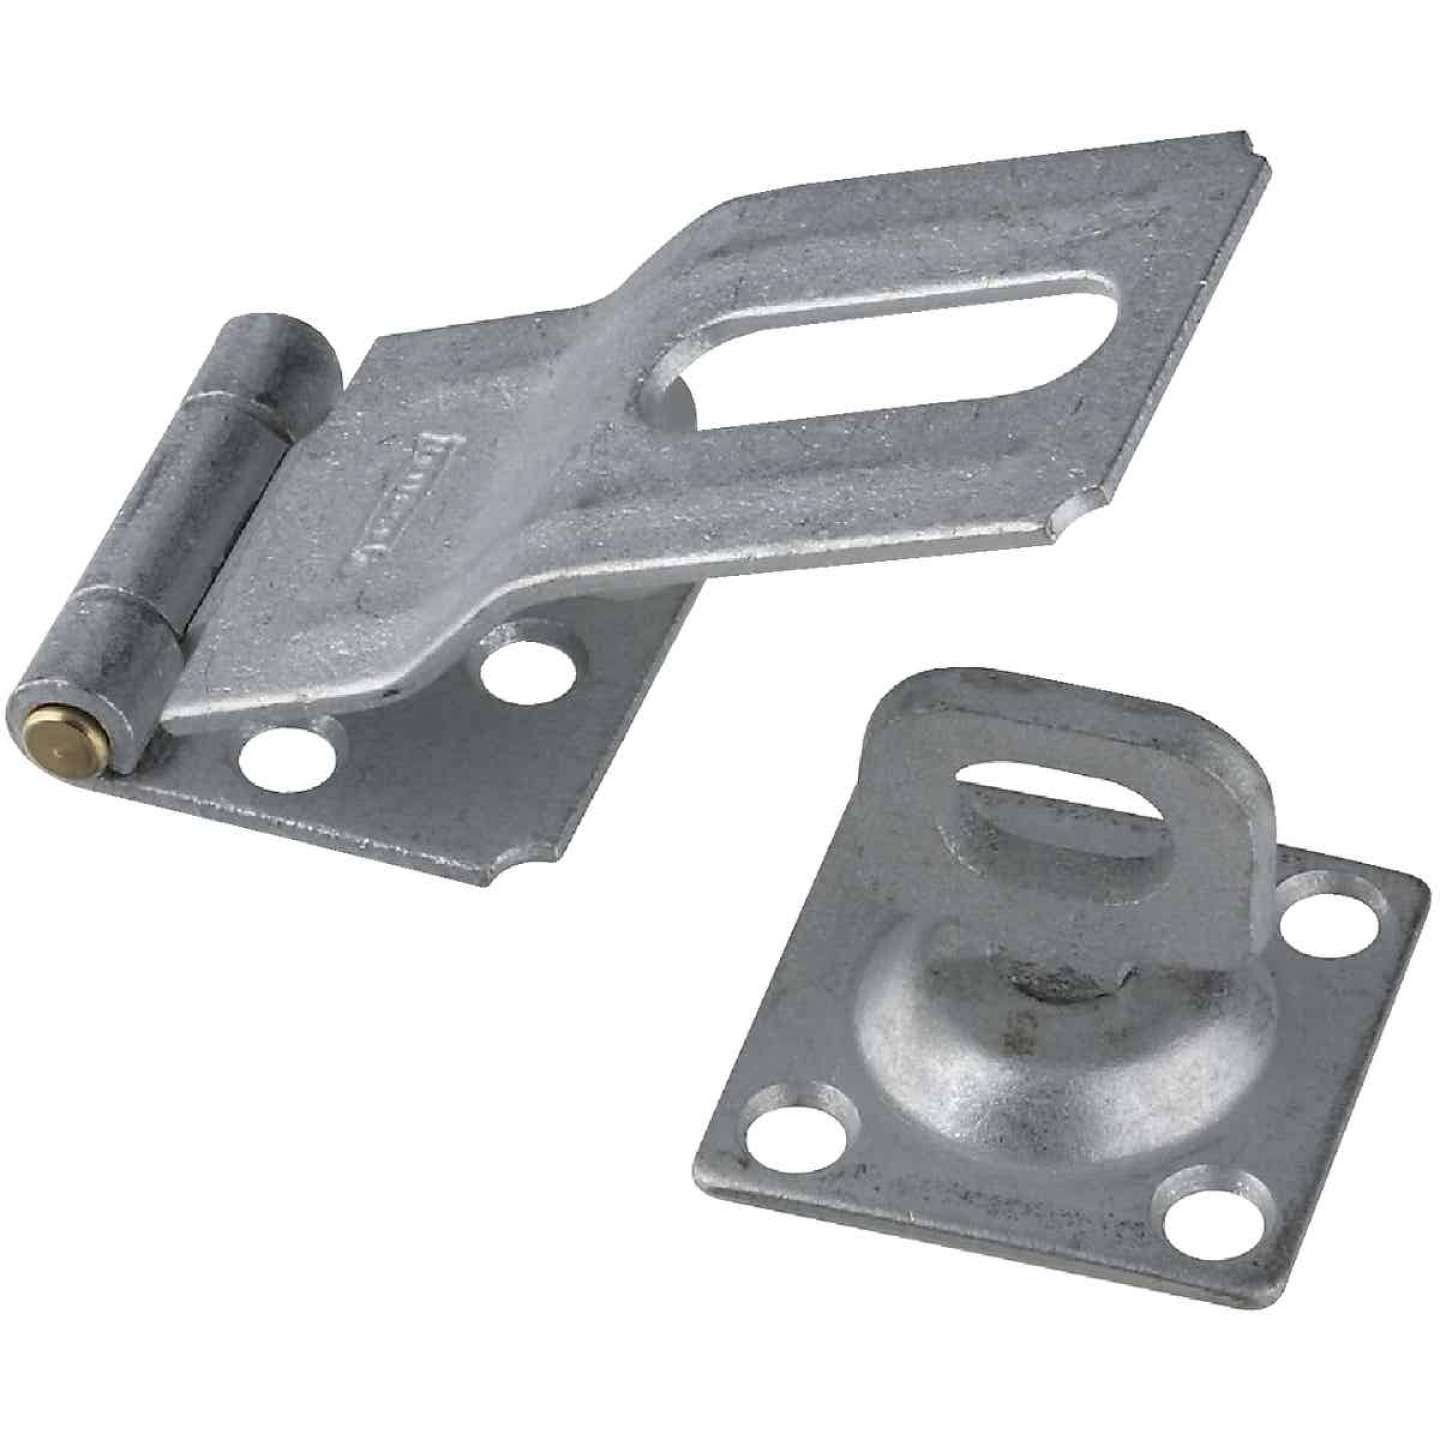 National 3-1/4 In. Galvanized Swivel Safety Hasp Image 1